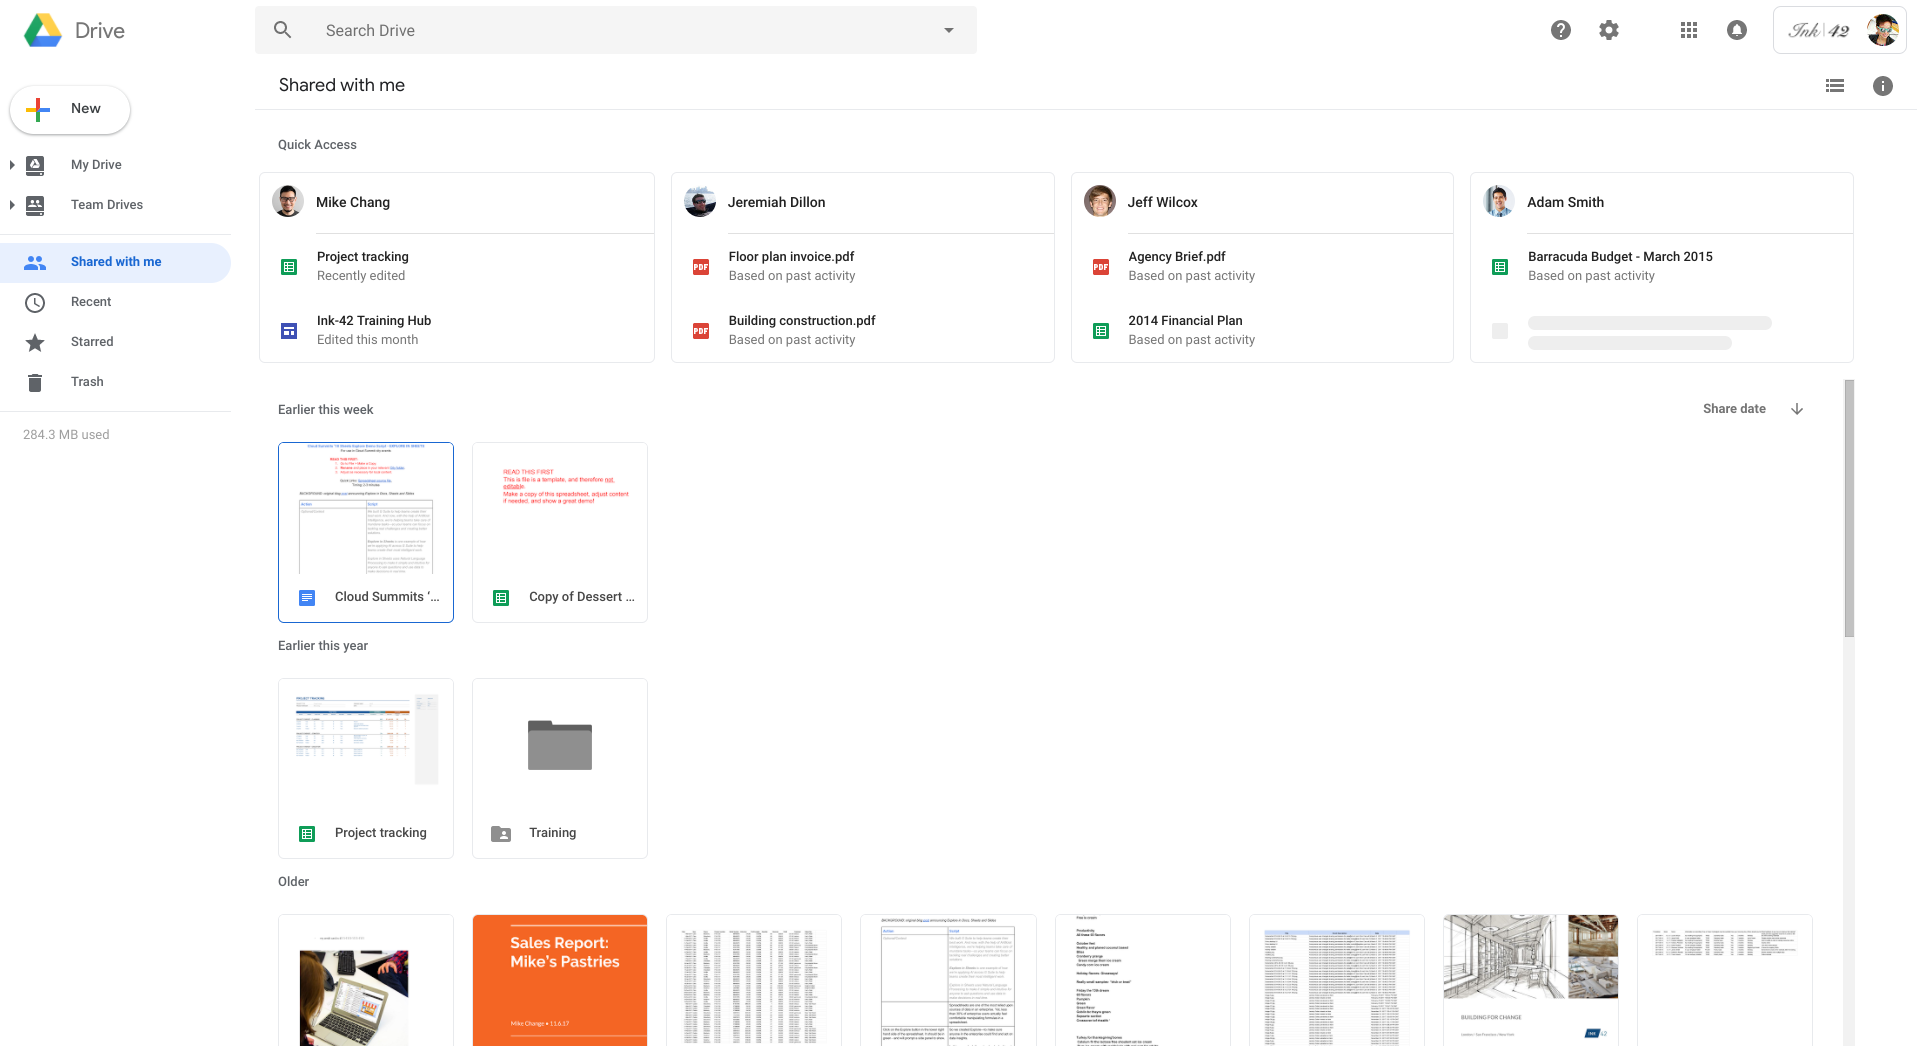 Google Drive gets an updated desktop UI to match the new Gmail